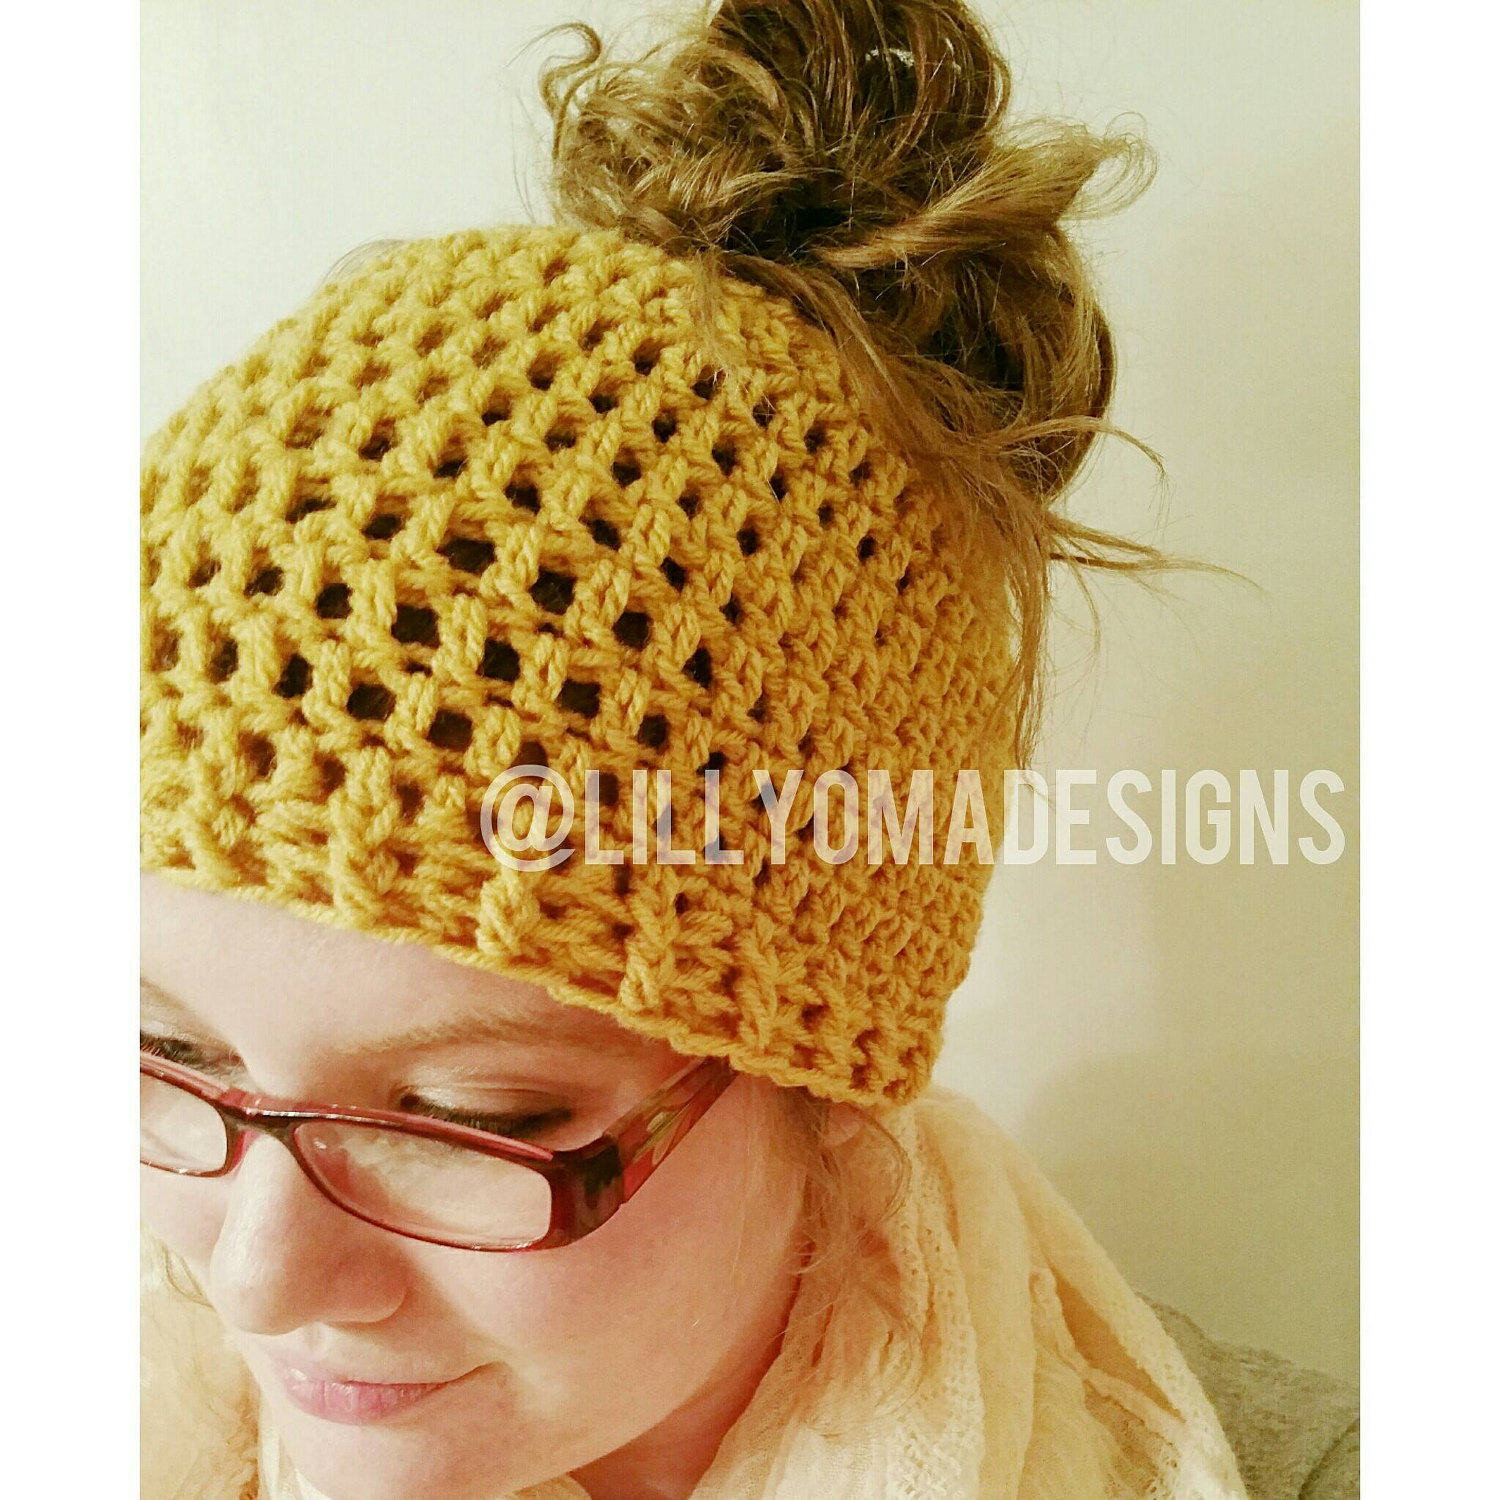 Hats for Buns Lovely Messy Bun Beanie Ponytail Hat Crochet Bun Hat Of Wonderful 40 Photos Hats for Buns